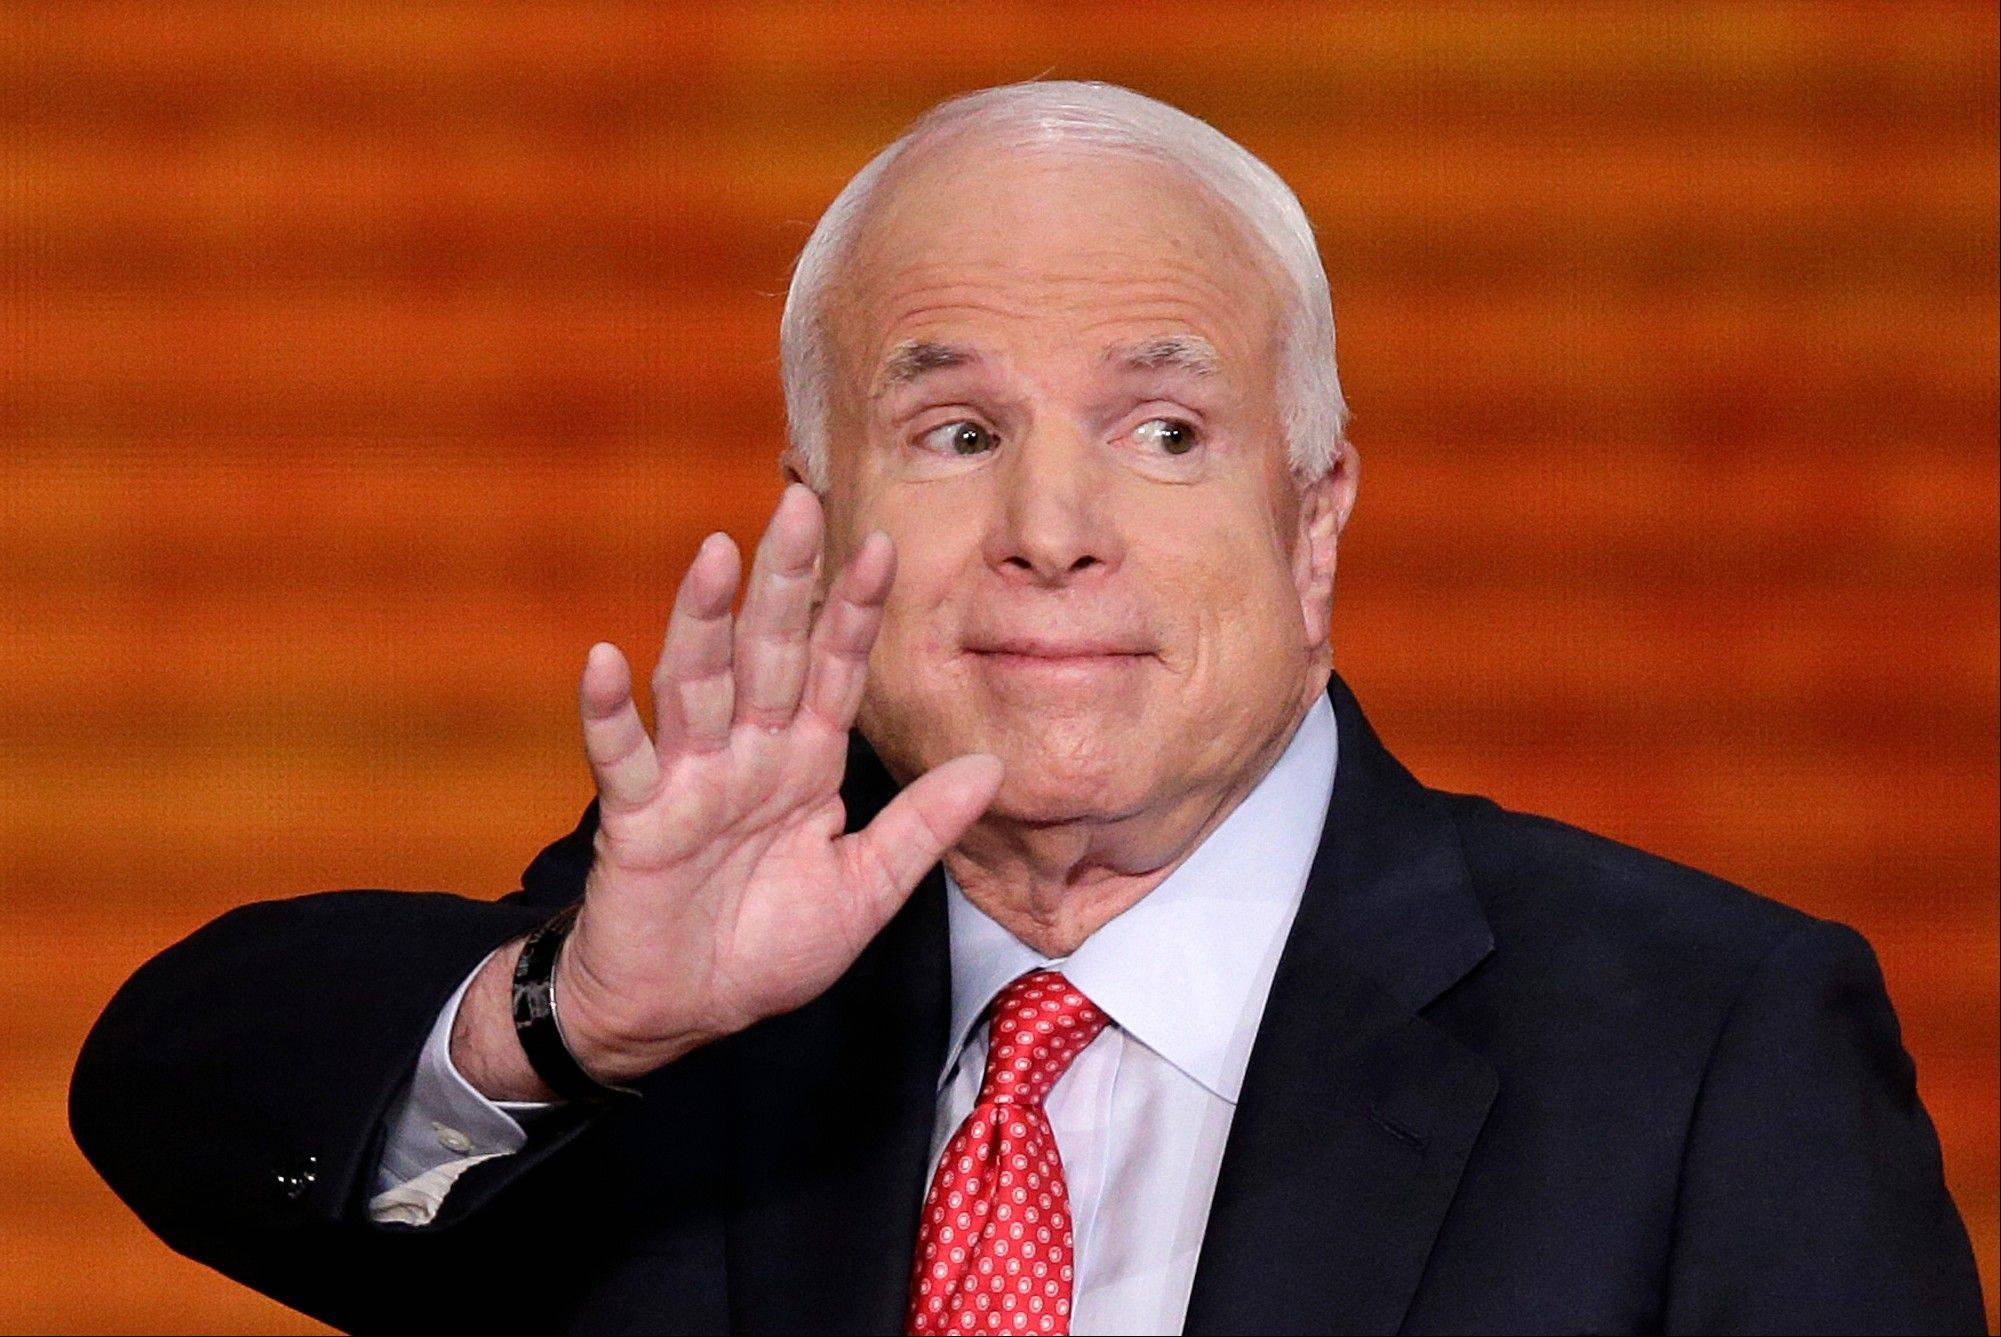 Sen. John McCain, R-Ariz., waves after addressing the Republican National Convention in Tampa, Fla., on Wednesday, Aug. 29, 2012.